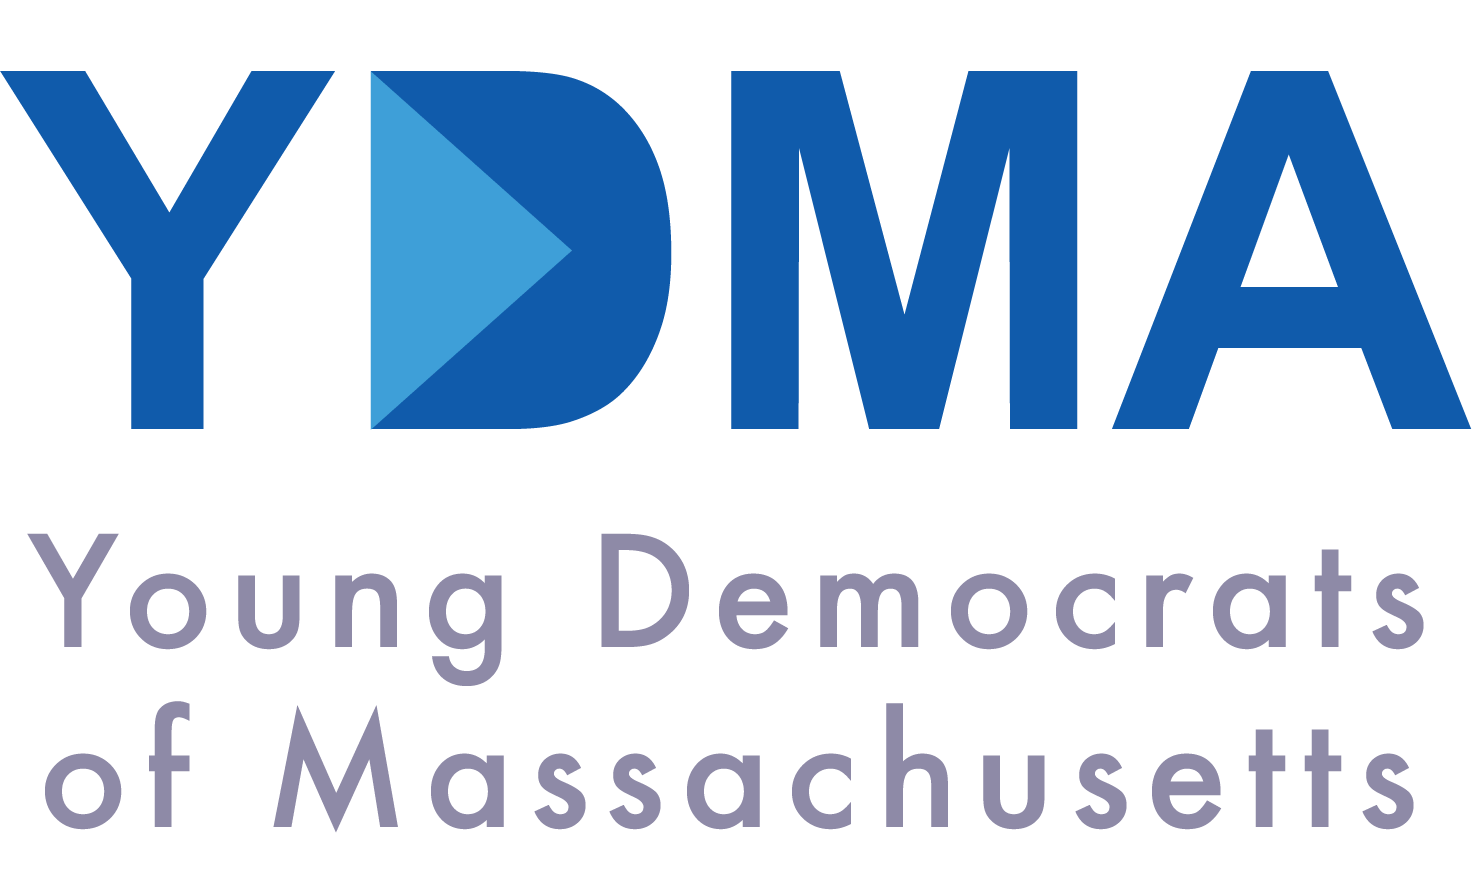 Young Democrats of Massachusetts PAC